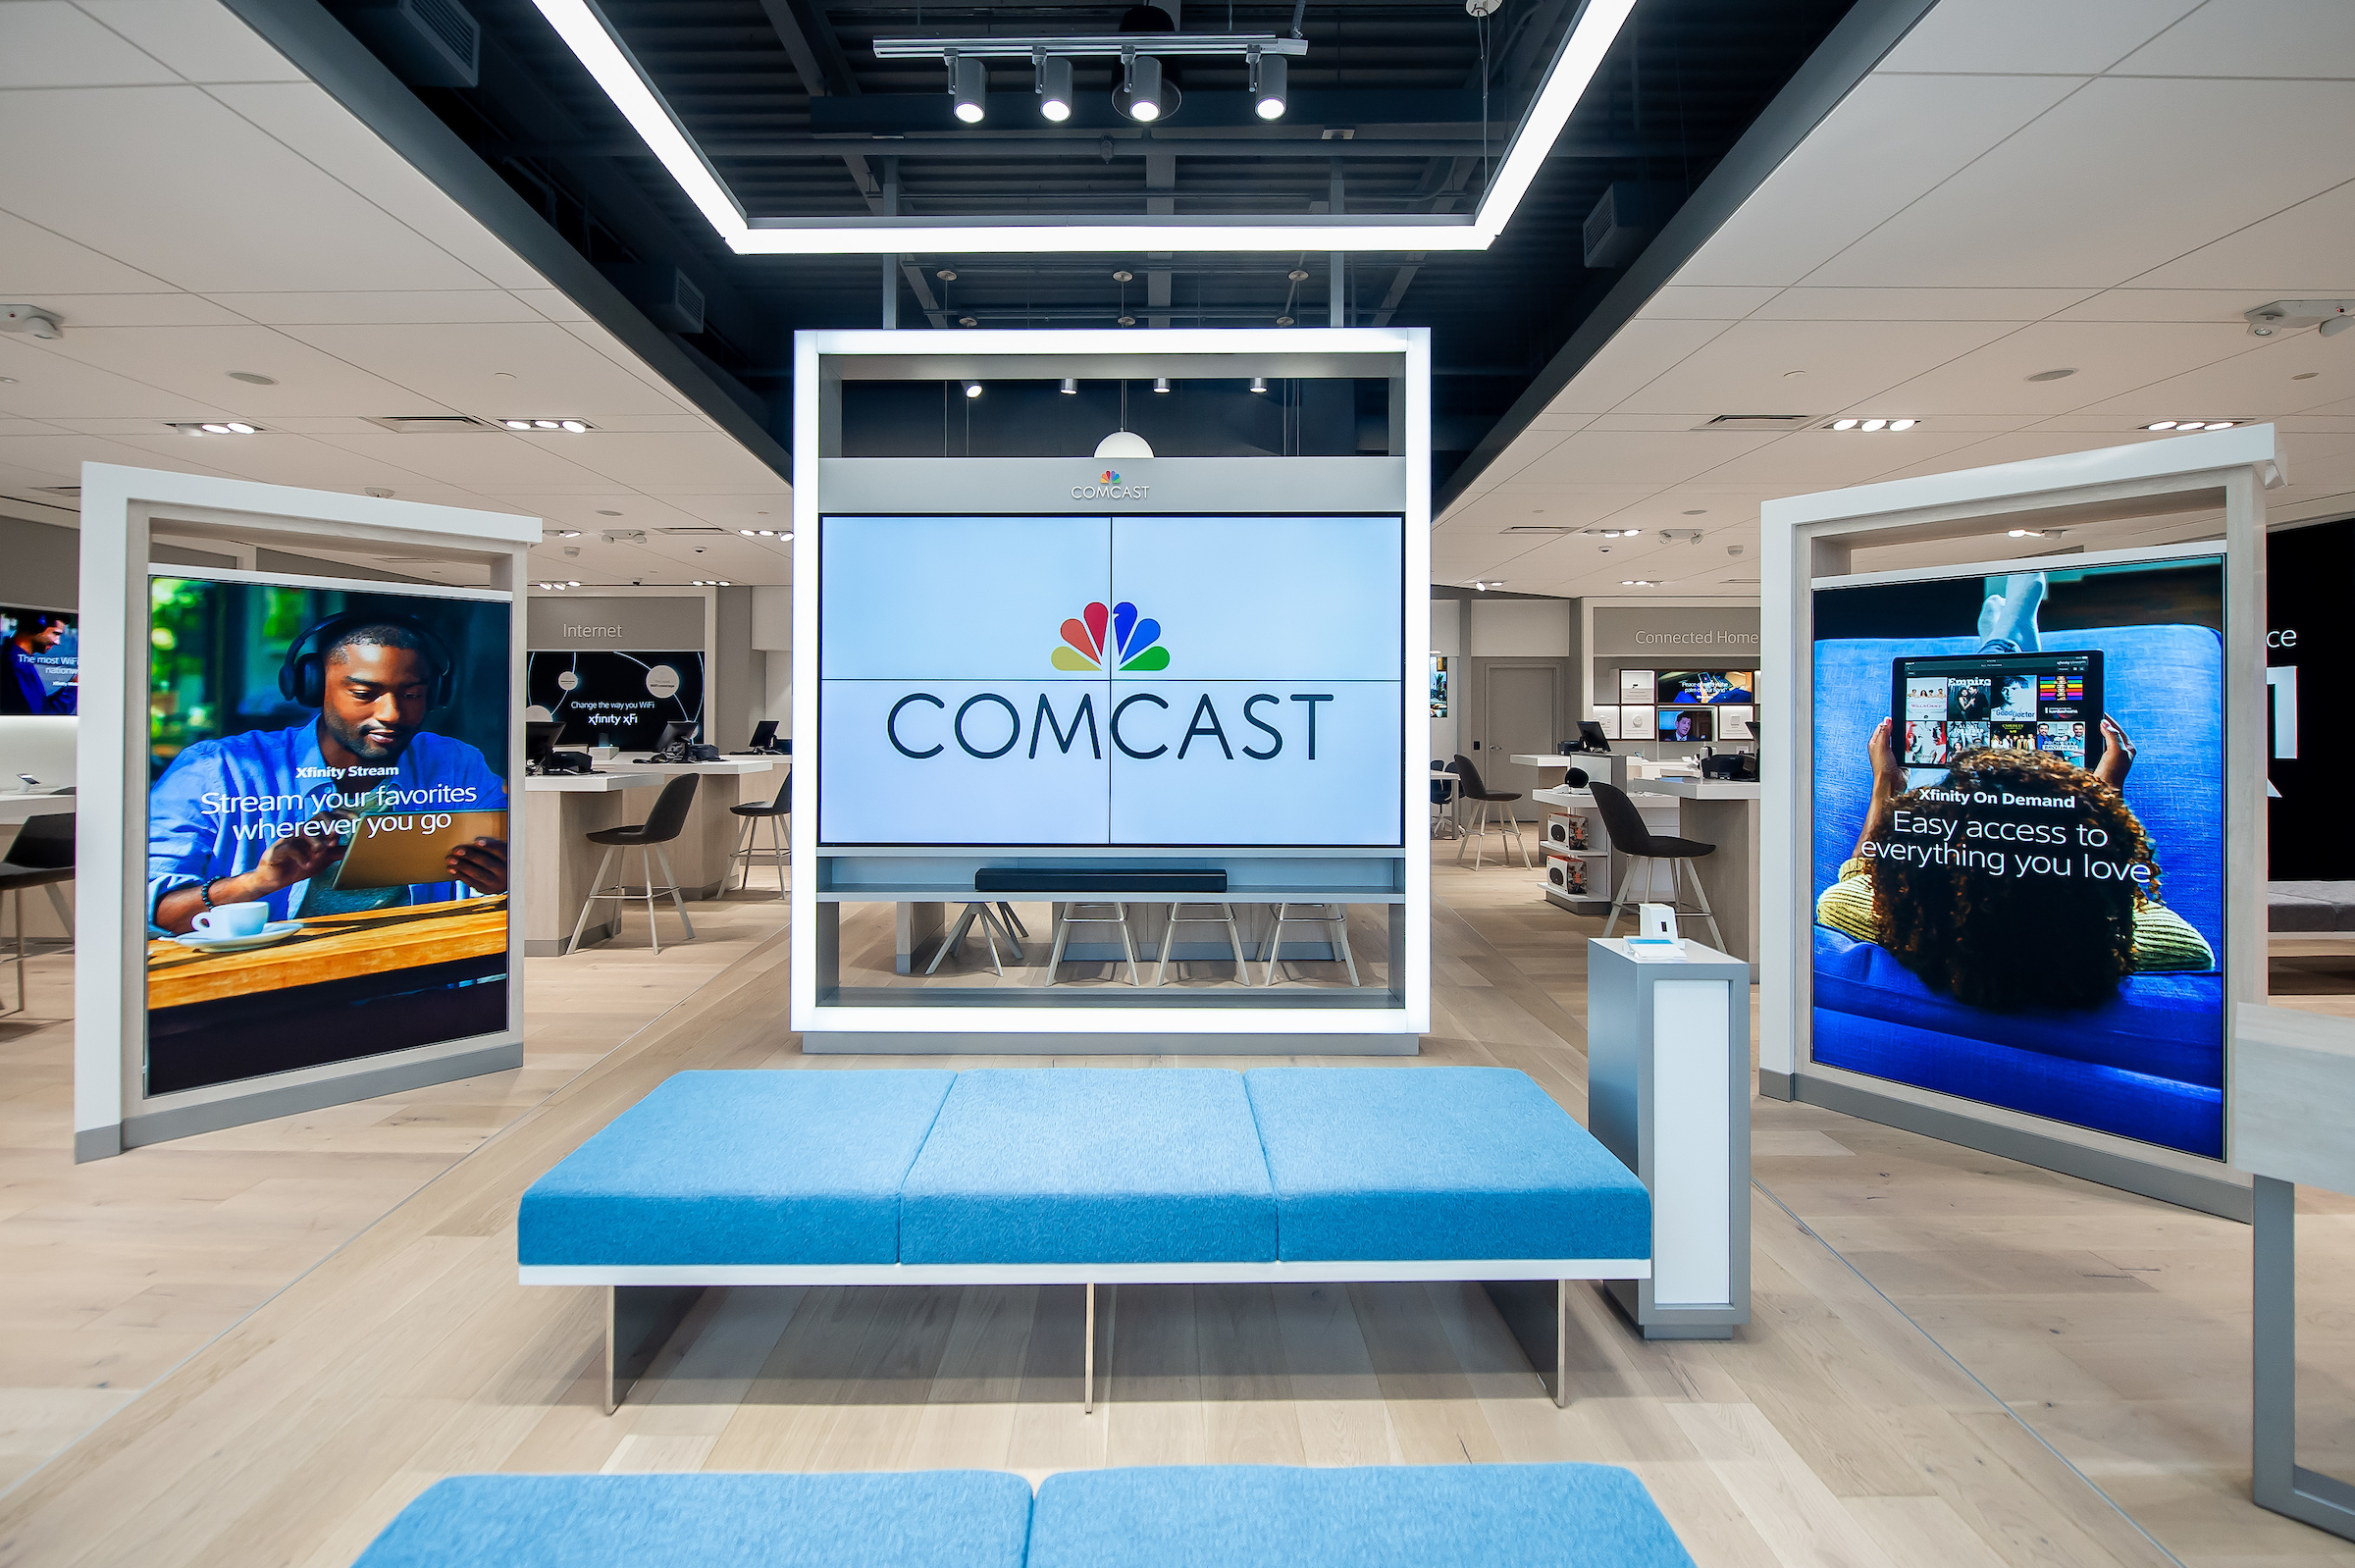 Comcast Launches New Interactive Xfinity Store Design Centered on ...